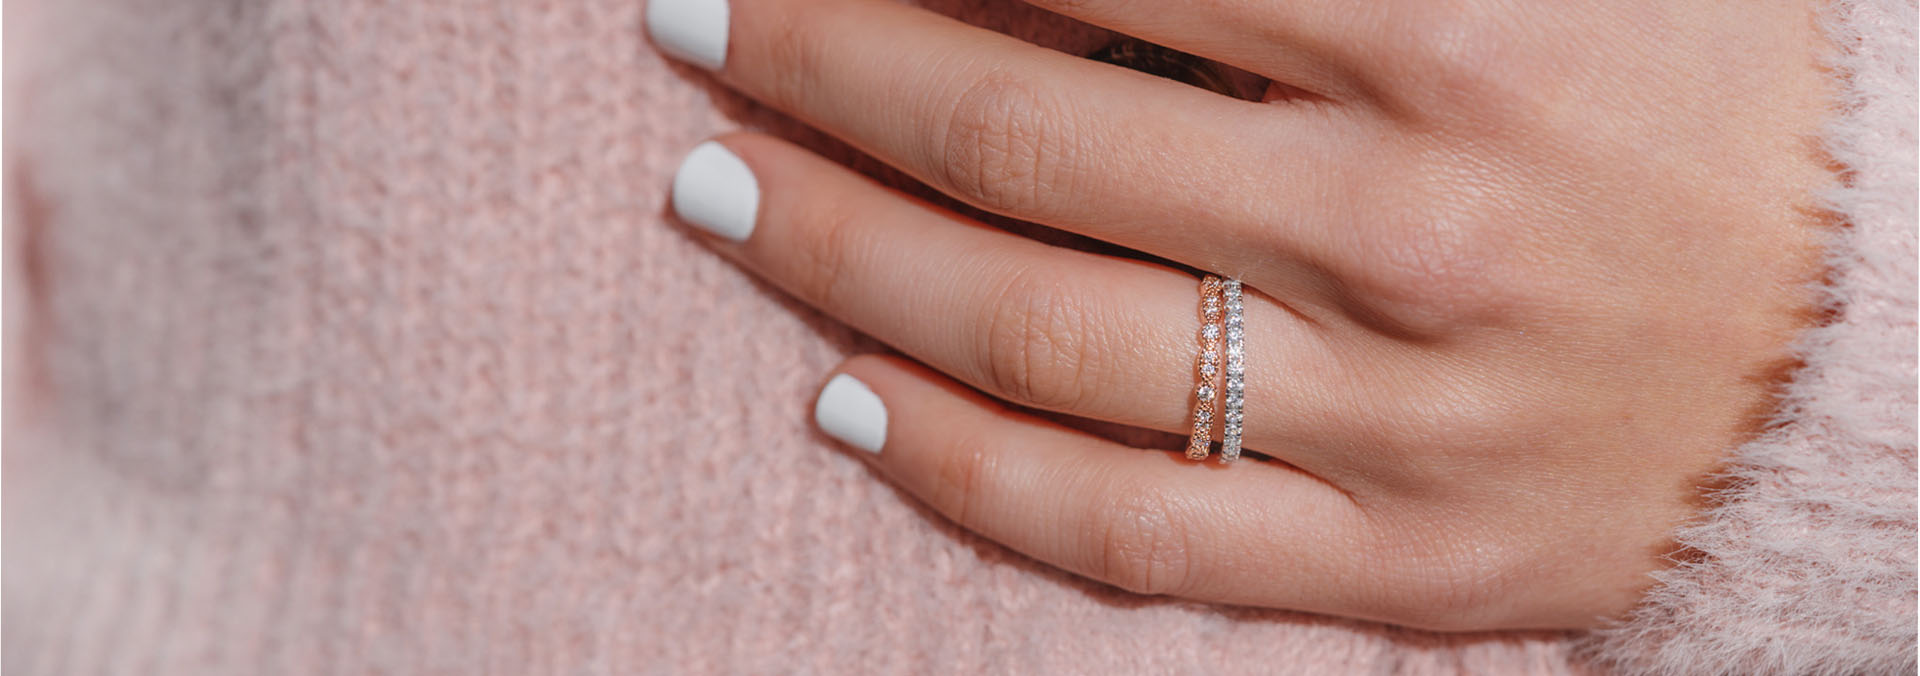 Which Hand Wedding Ring Female.Stackable Wedding Bands Affordable Wedding Bands For Her Modern